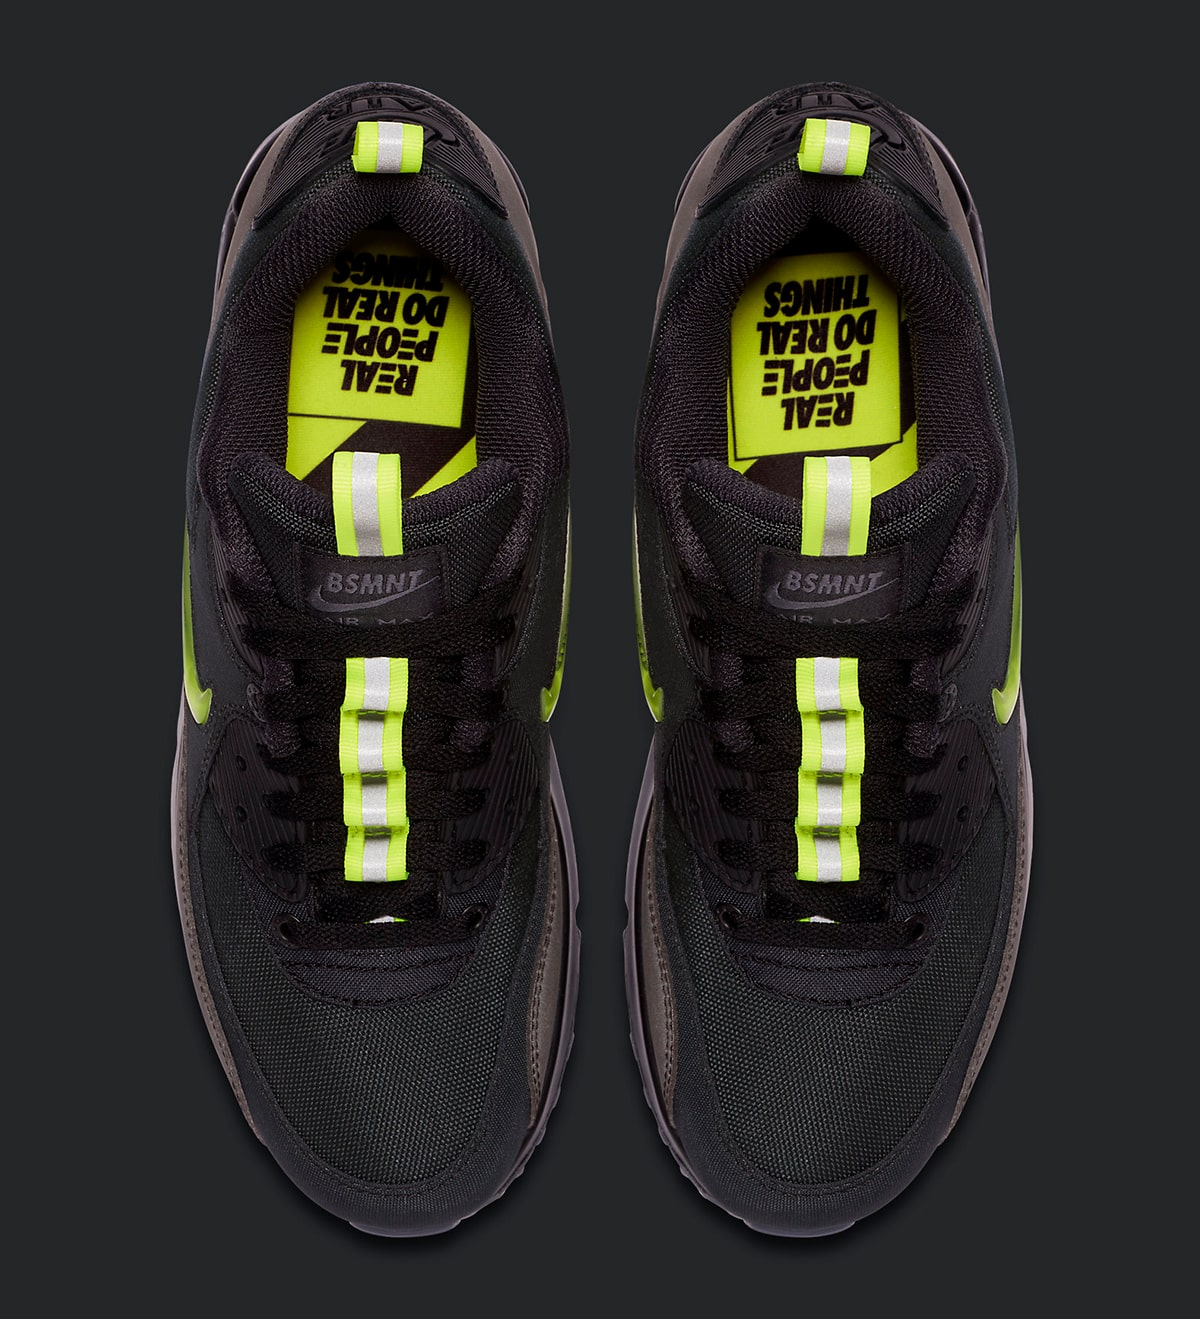 The Third and Final The Basement x Nike Air Max 90 Collab